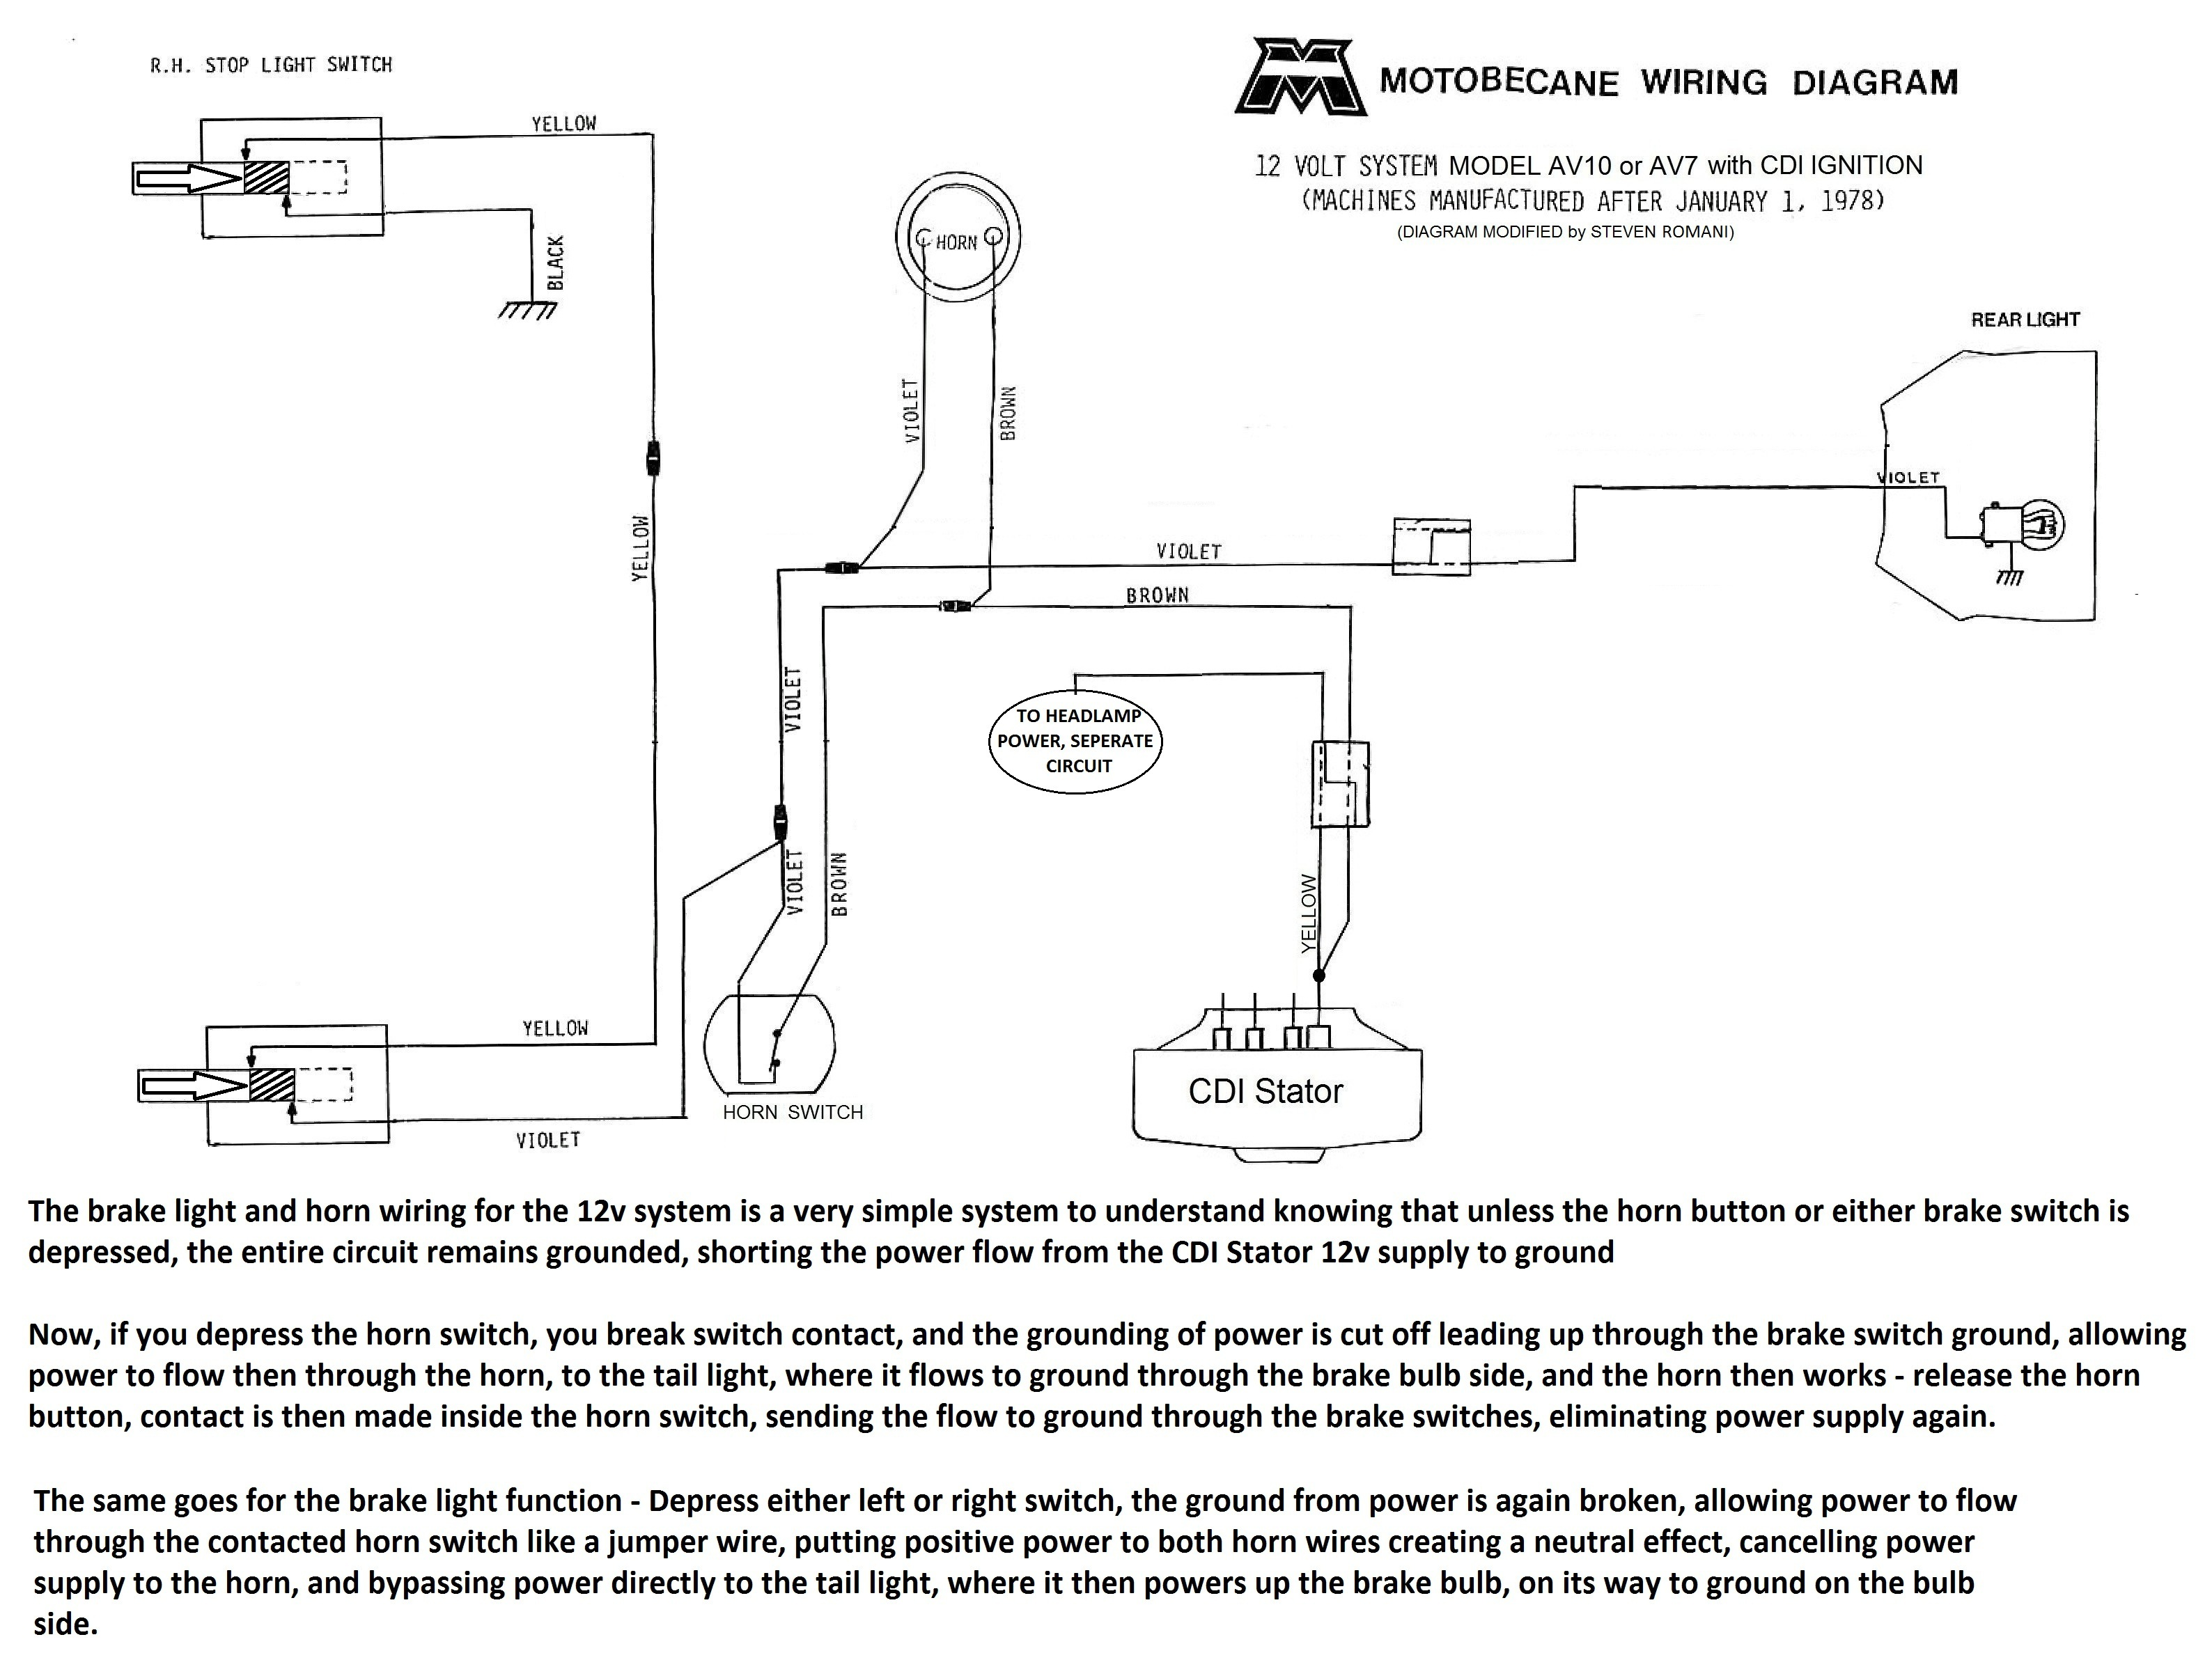 Motobecane Wiring Diagrams Moped Wiki Basic 12 Volt Electrical 12v Cdi Diagram Av10 Secondary Power